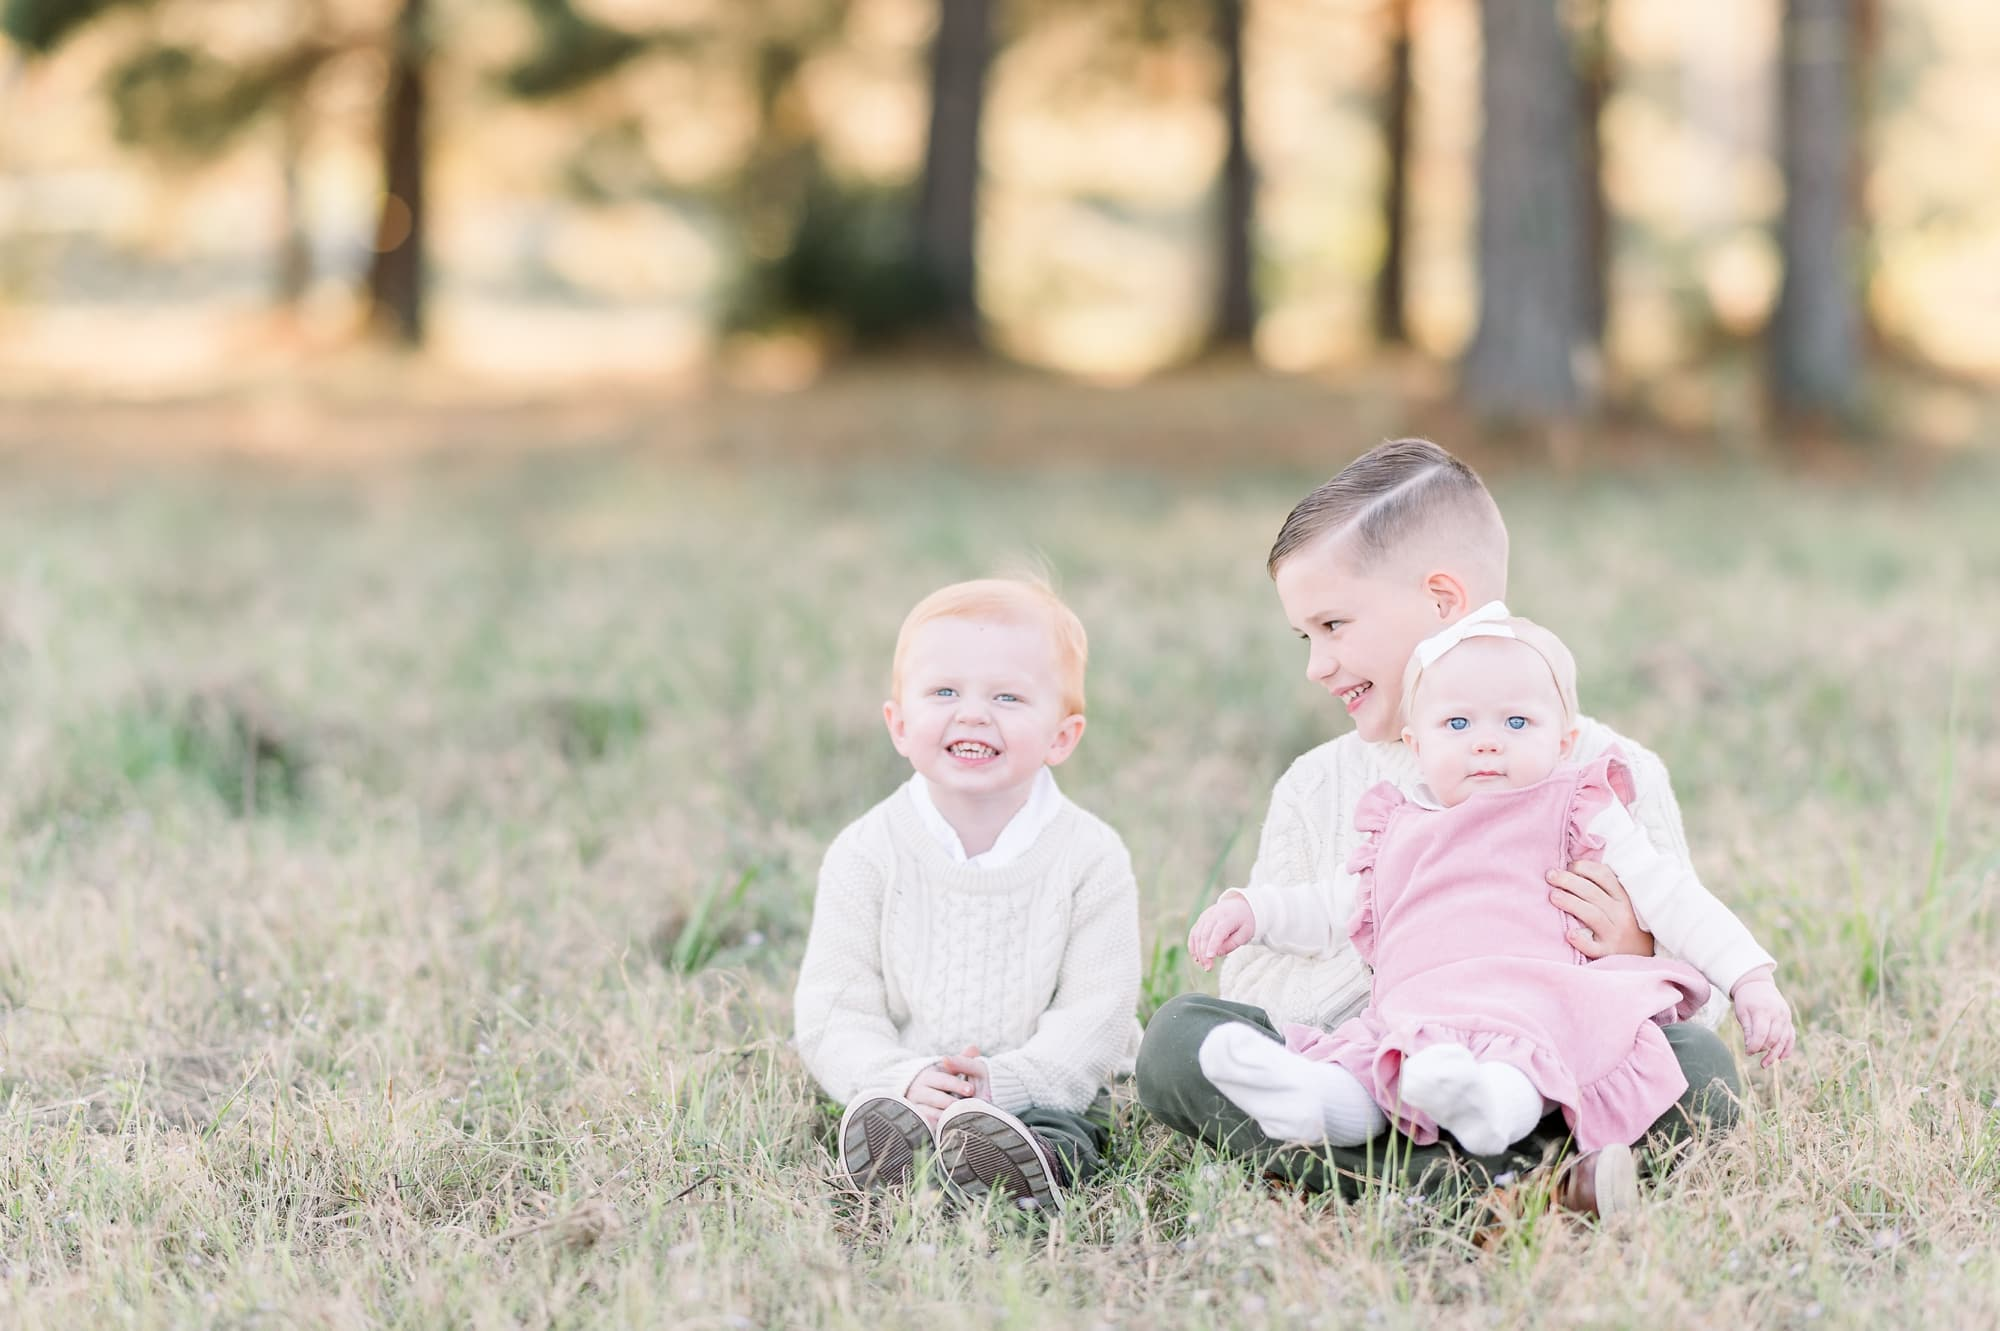 Candid photo of three siblings during sunset session. Photo by Aimee Hamilton Photography.